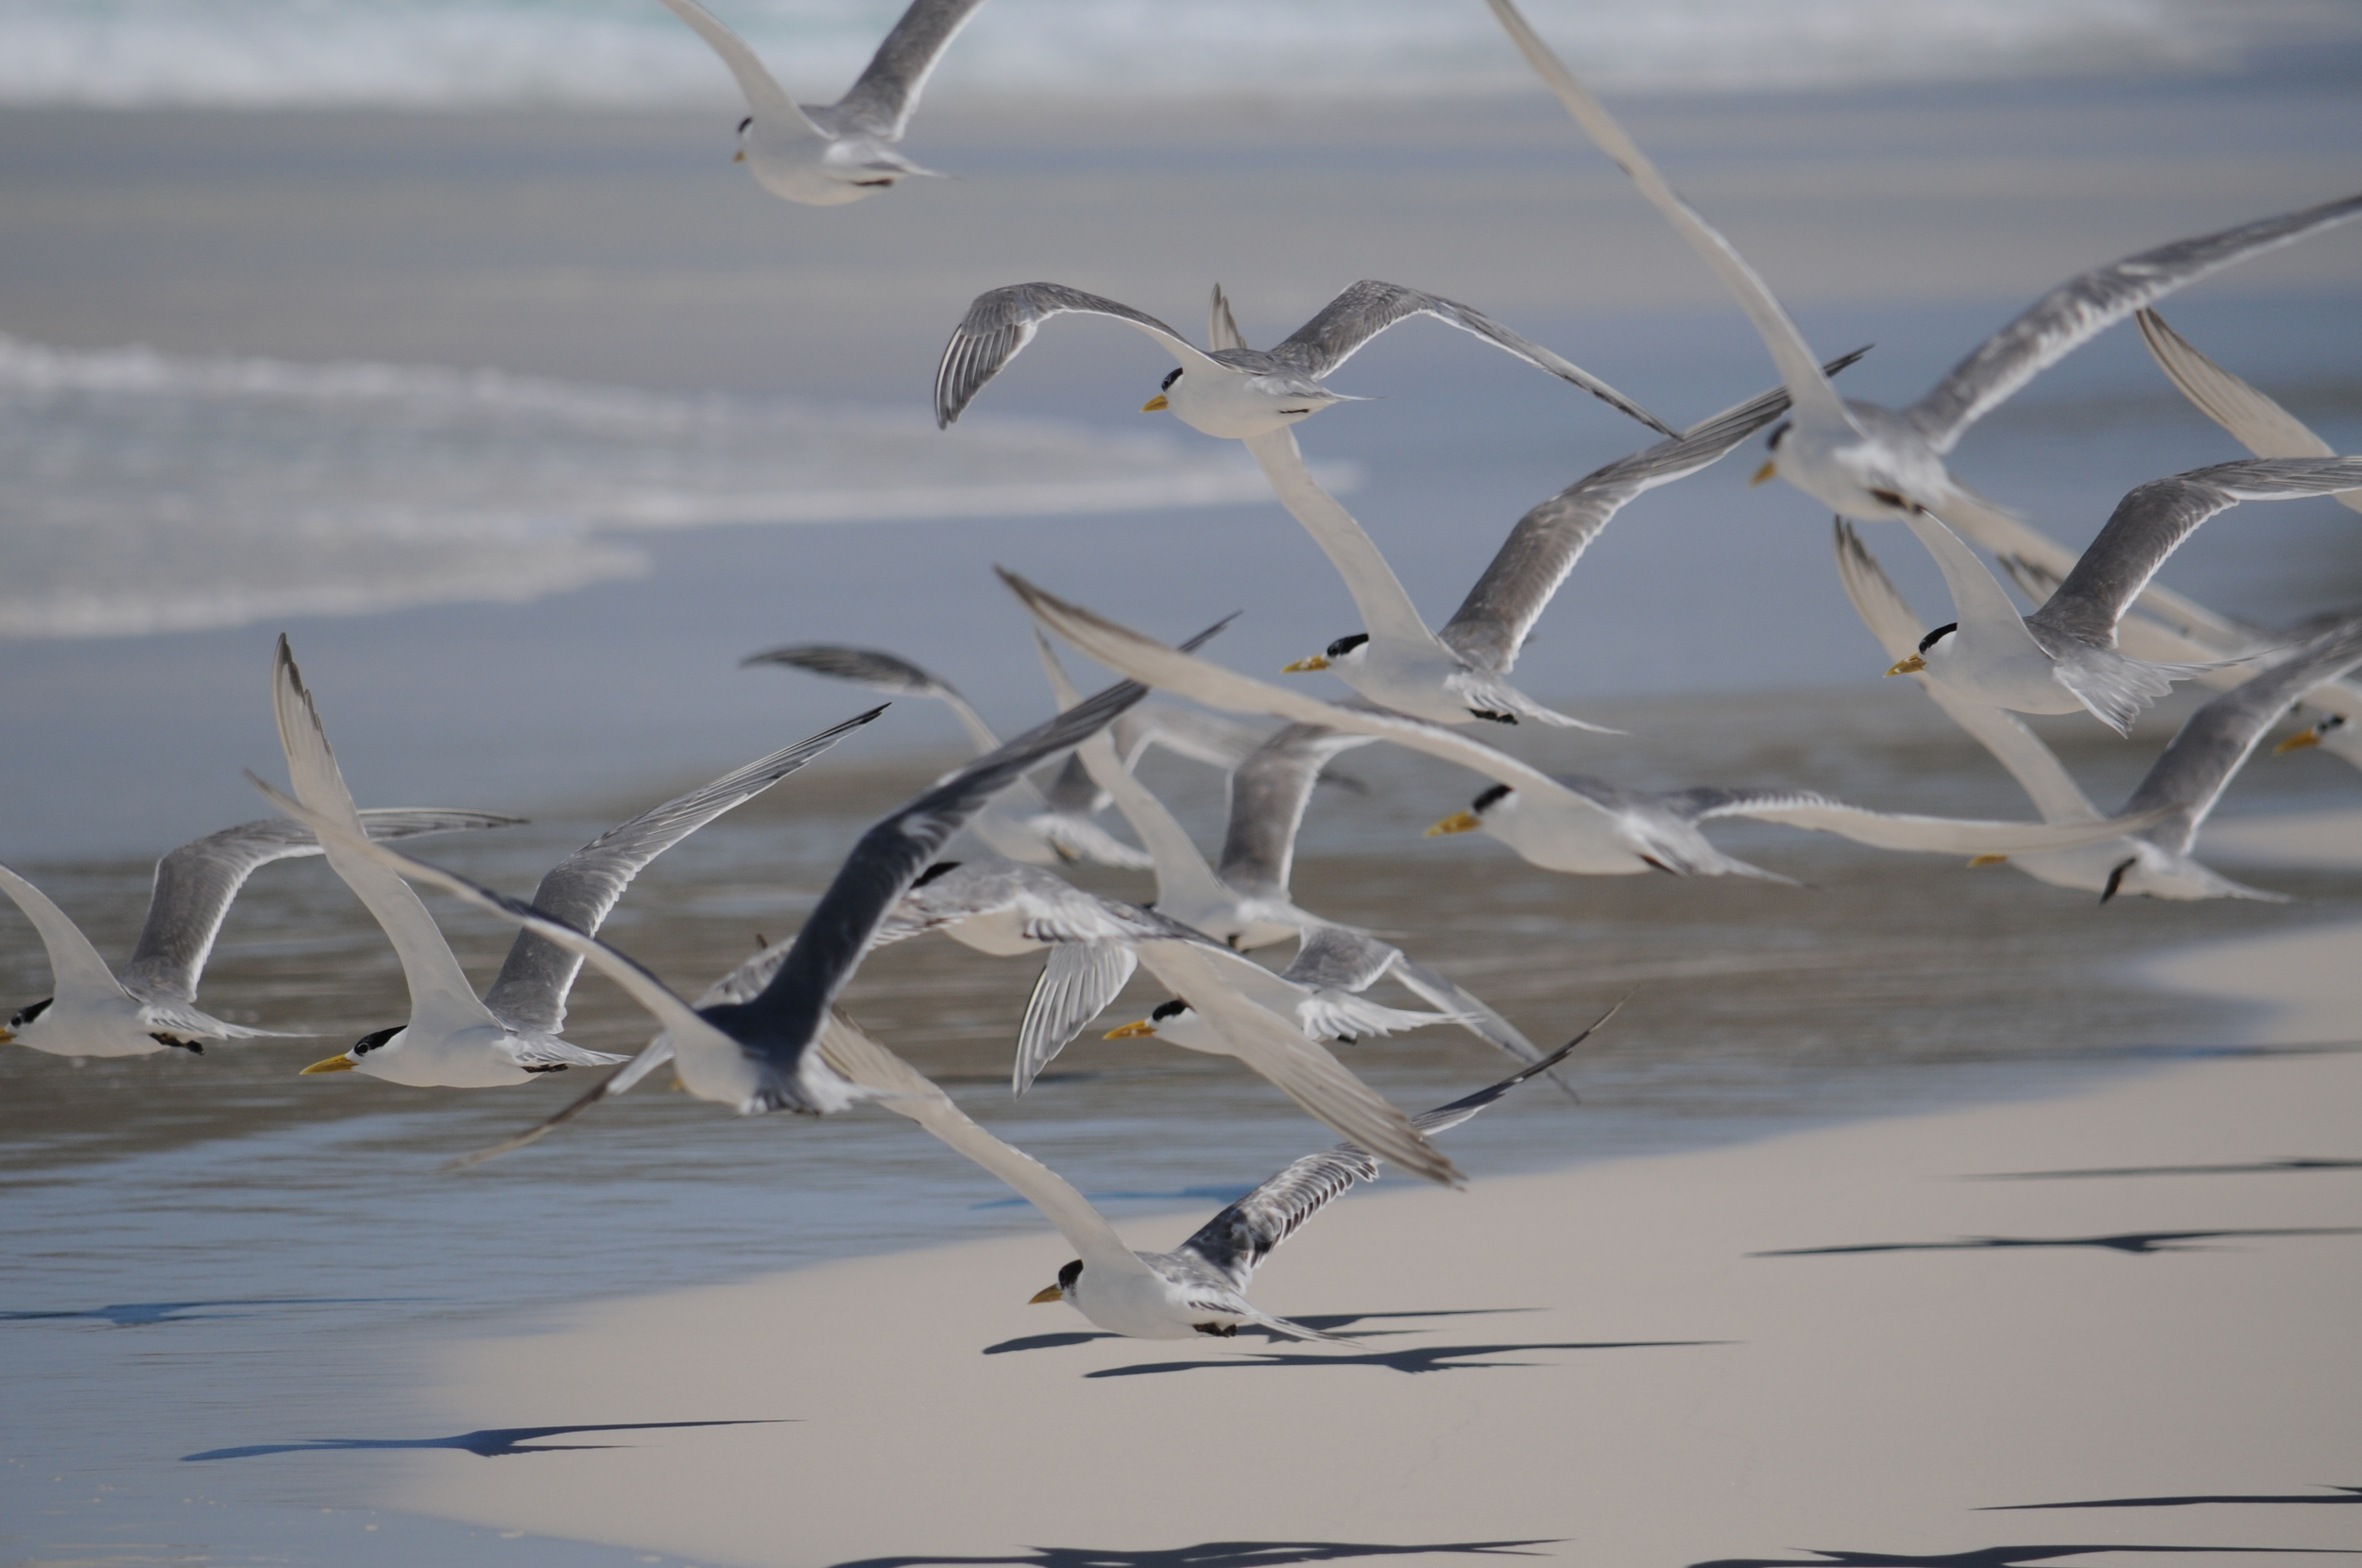 A group of caspian terns take off.